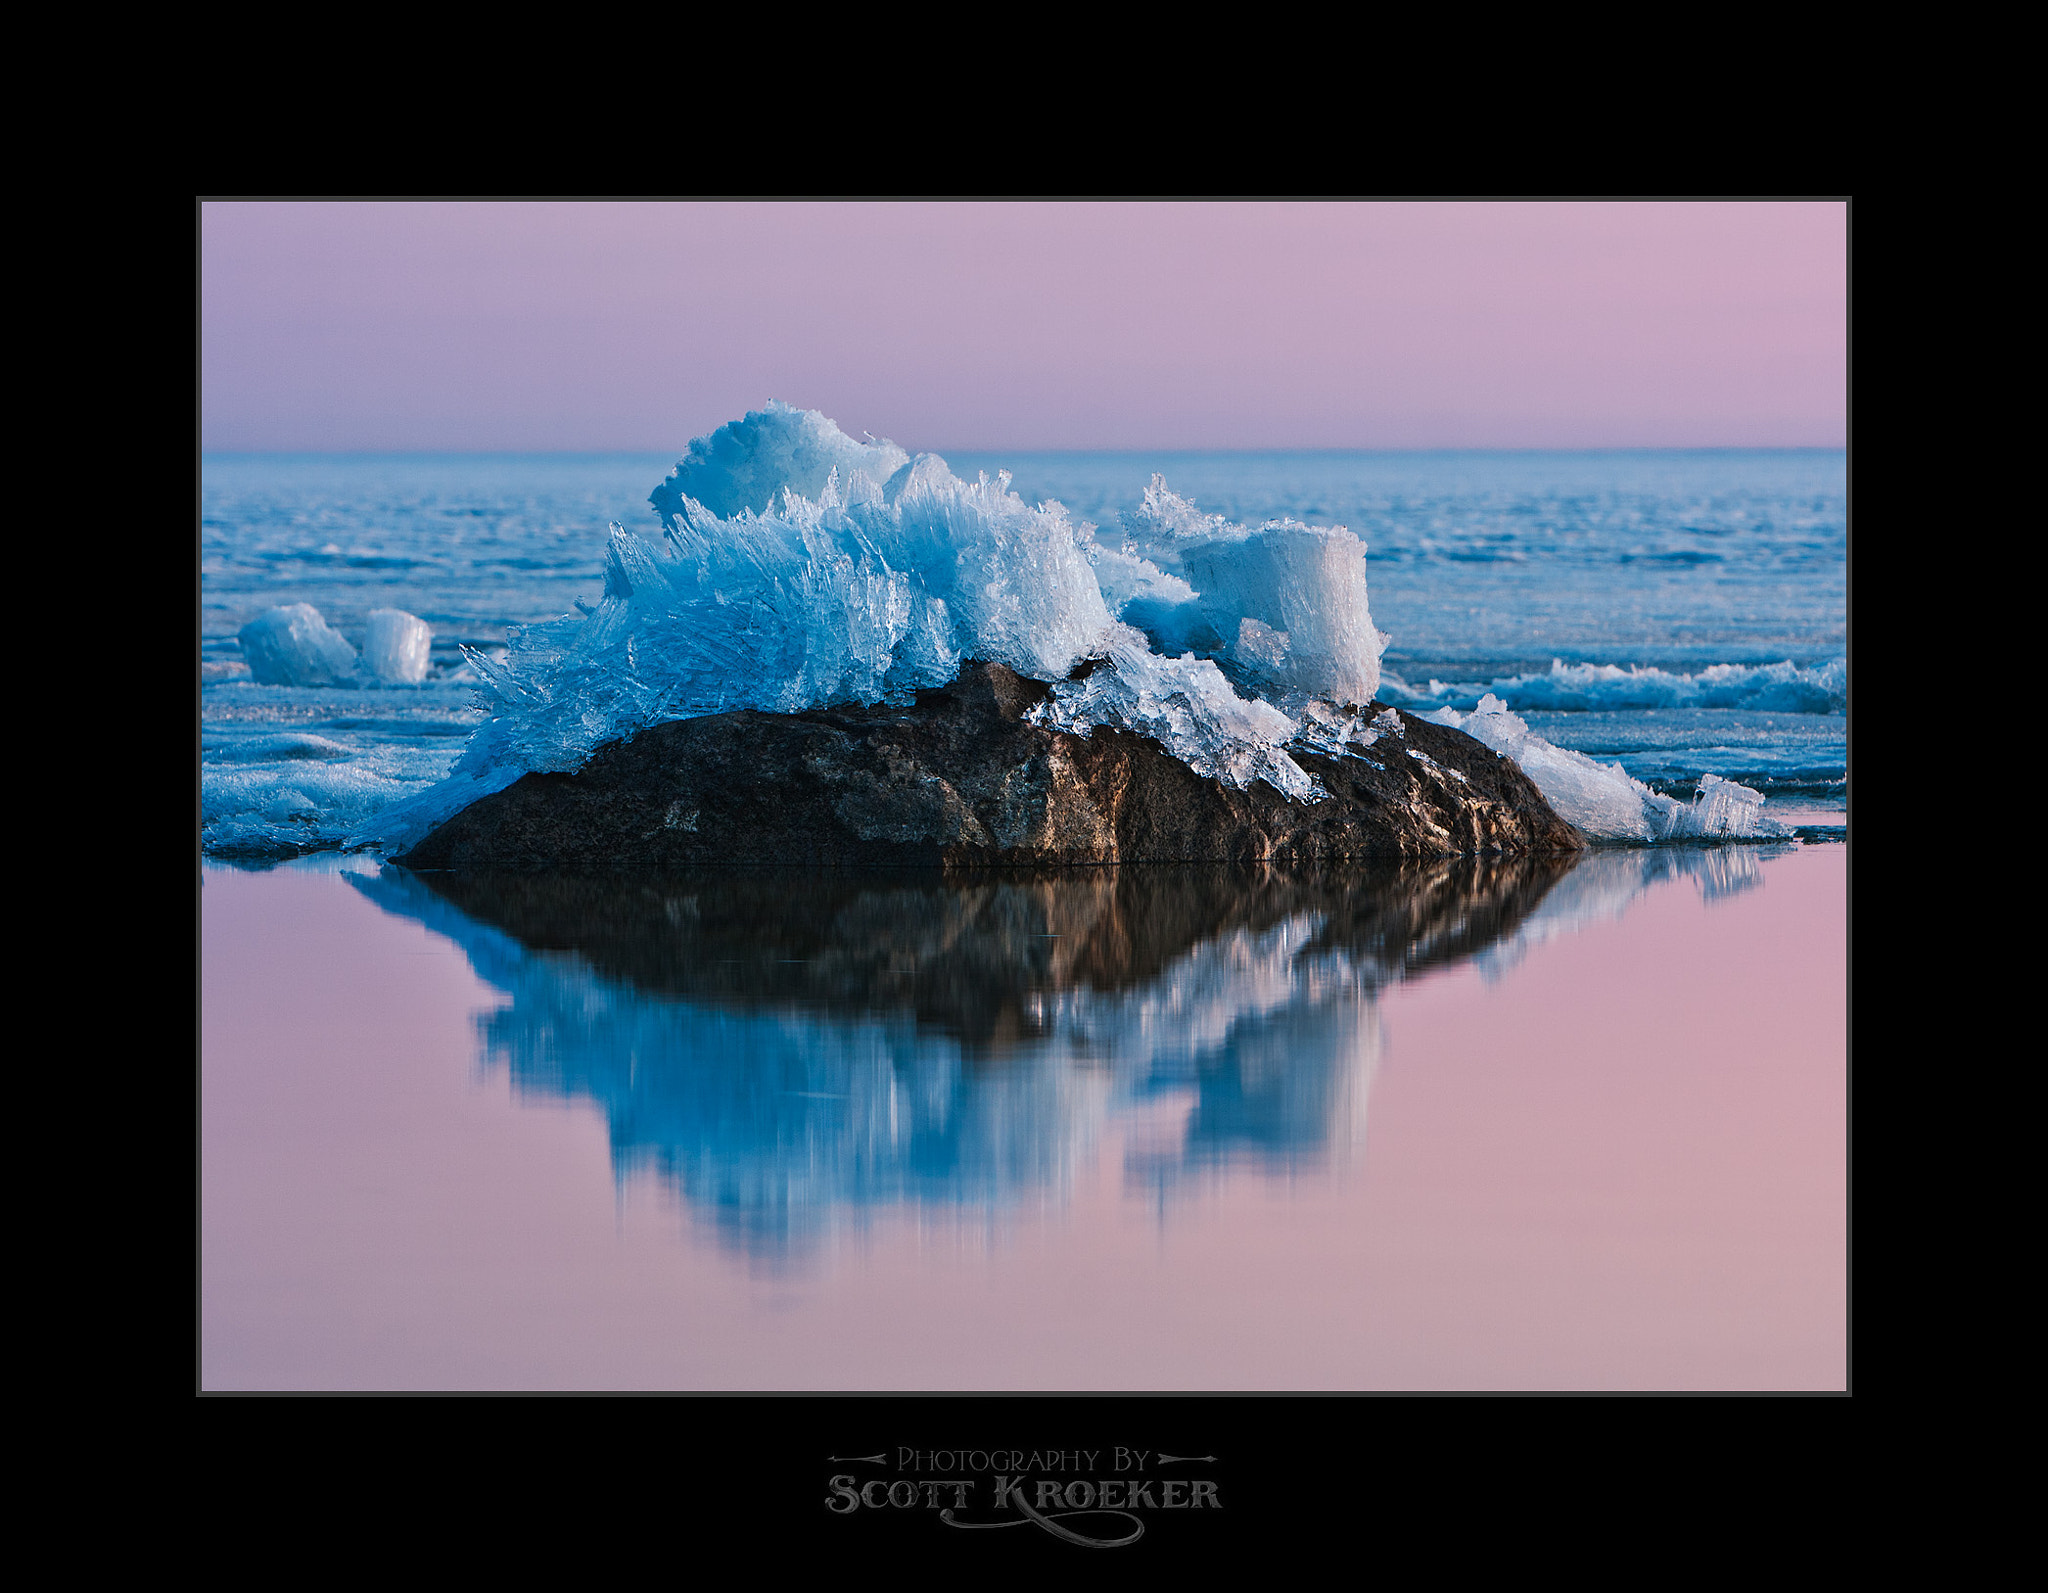 Photograph Lake Ice VS Immovable Rocks II by Scott Kroeker on 500px